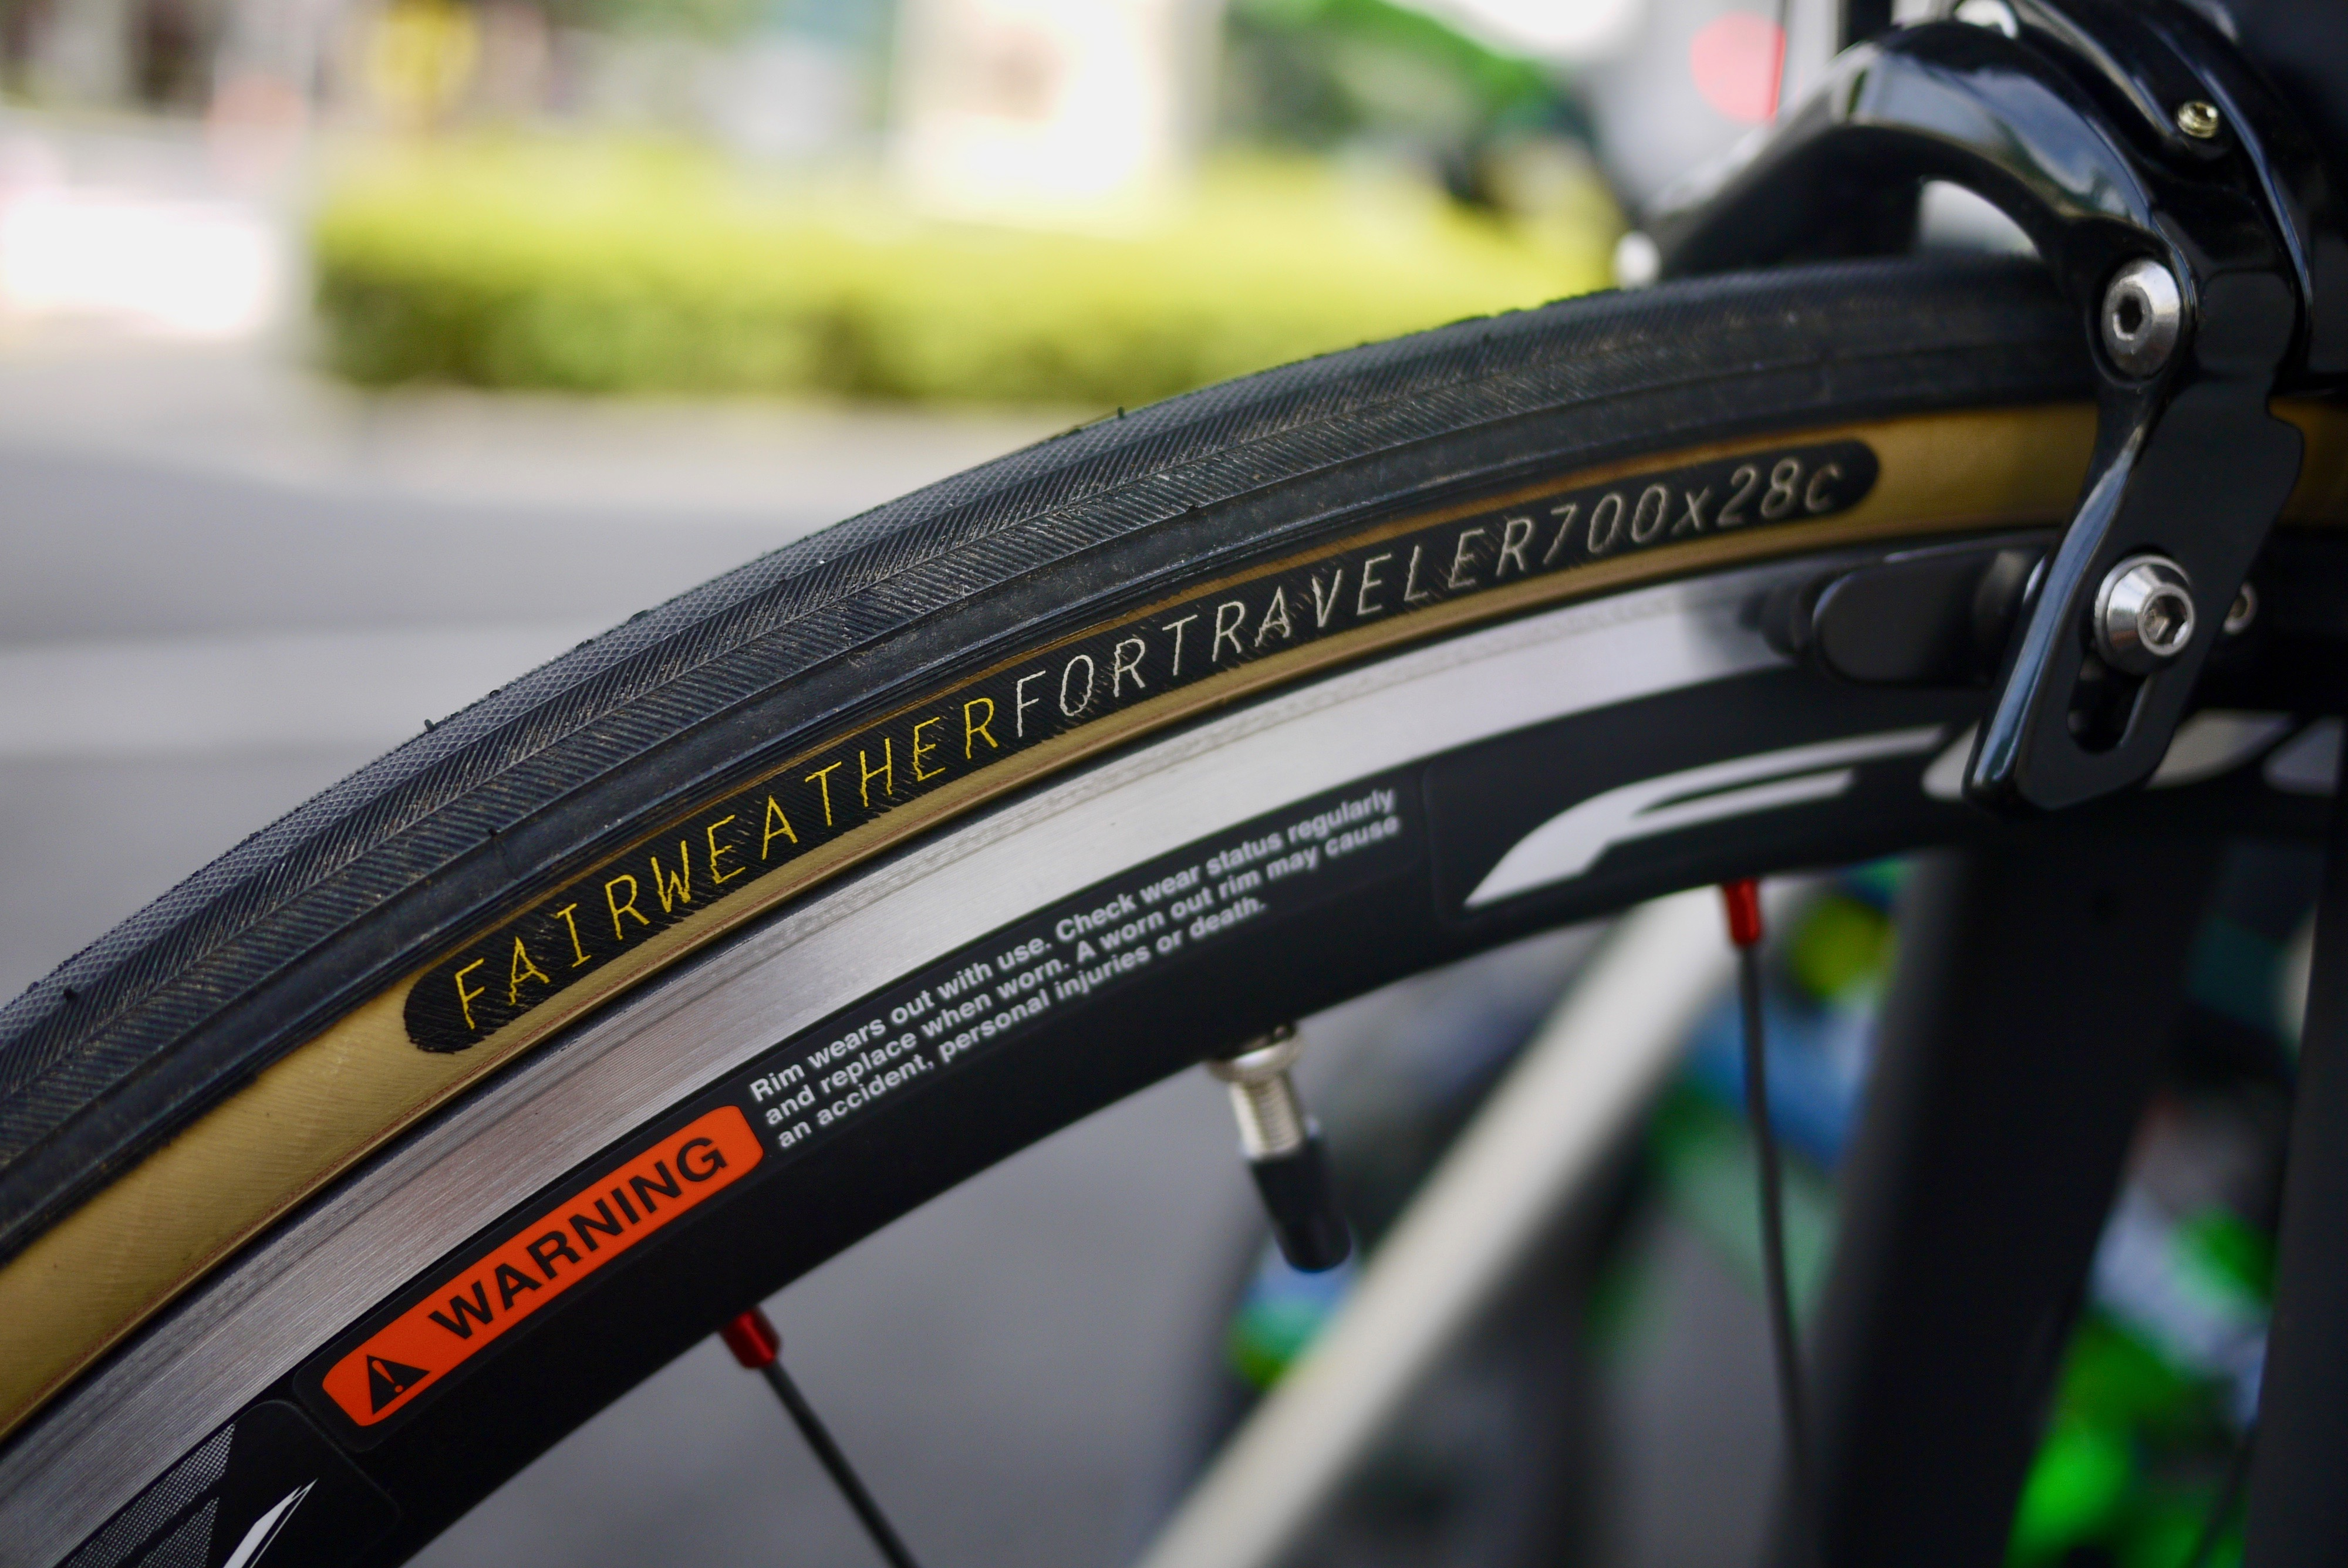 FAIRWEATHER Traveler Tire